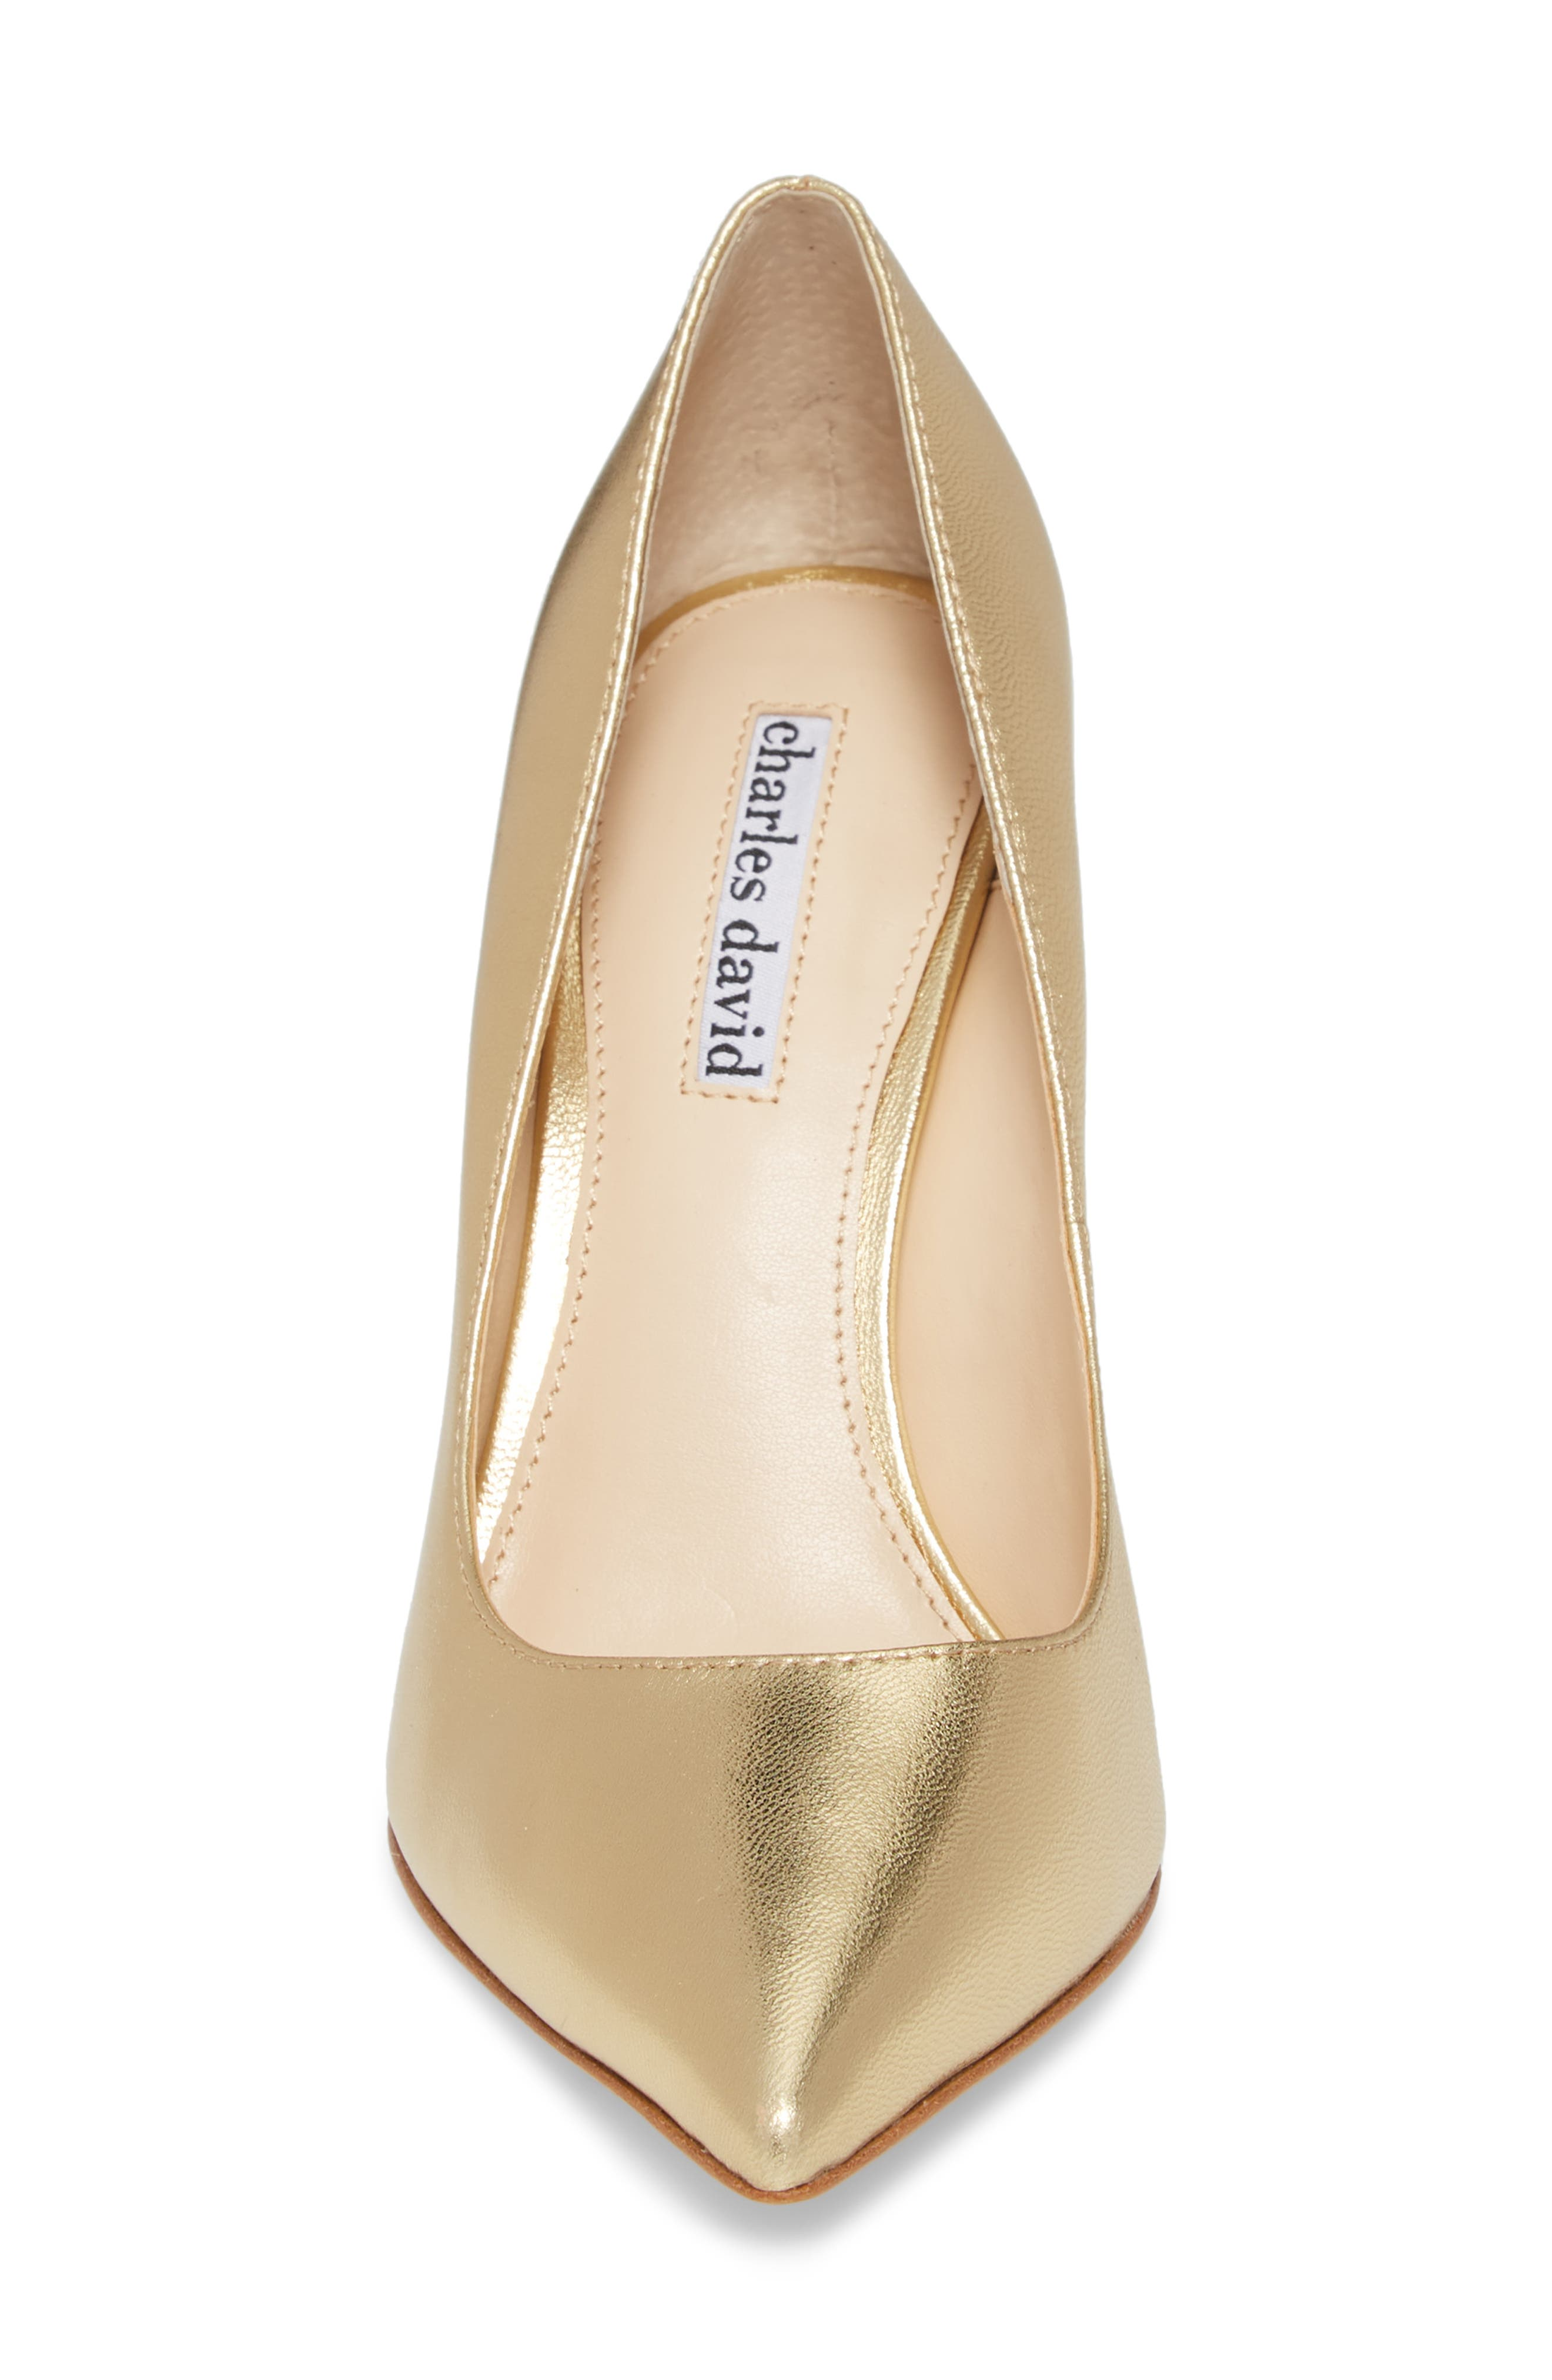 CHARLES DAVID, Calessi Pointy Toe Pump, Alternate thumbnail 4, color, GOLD LEATHER